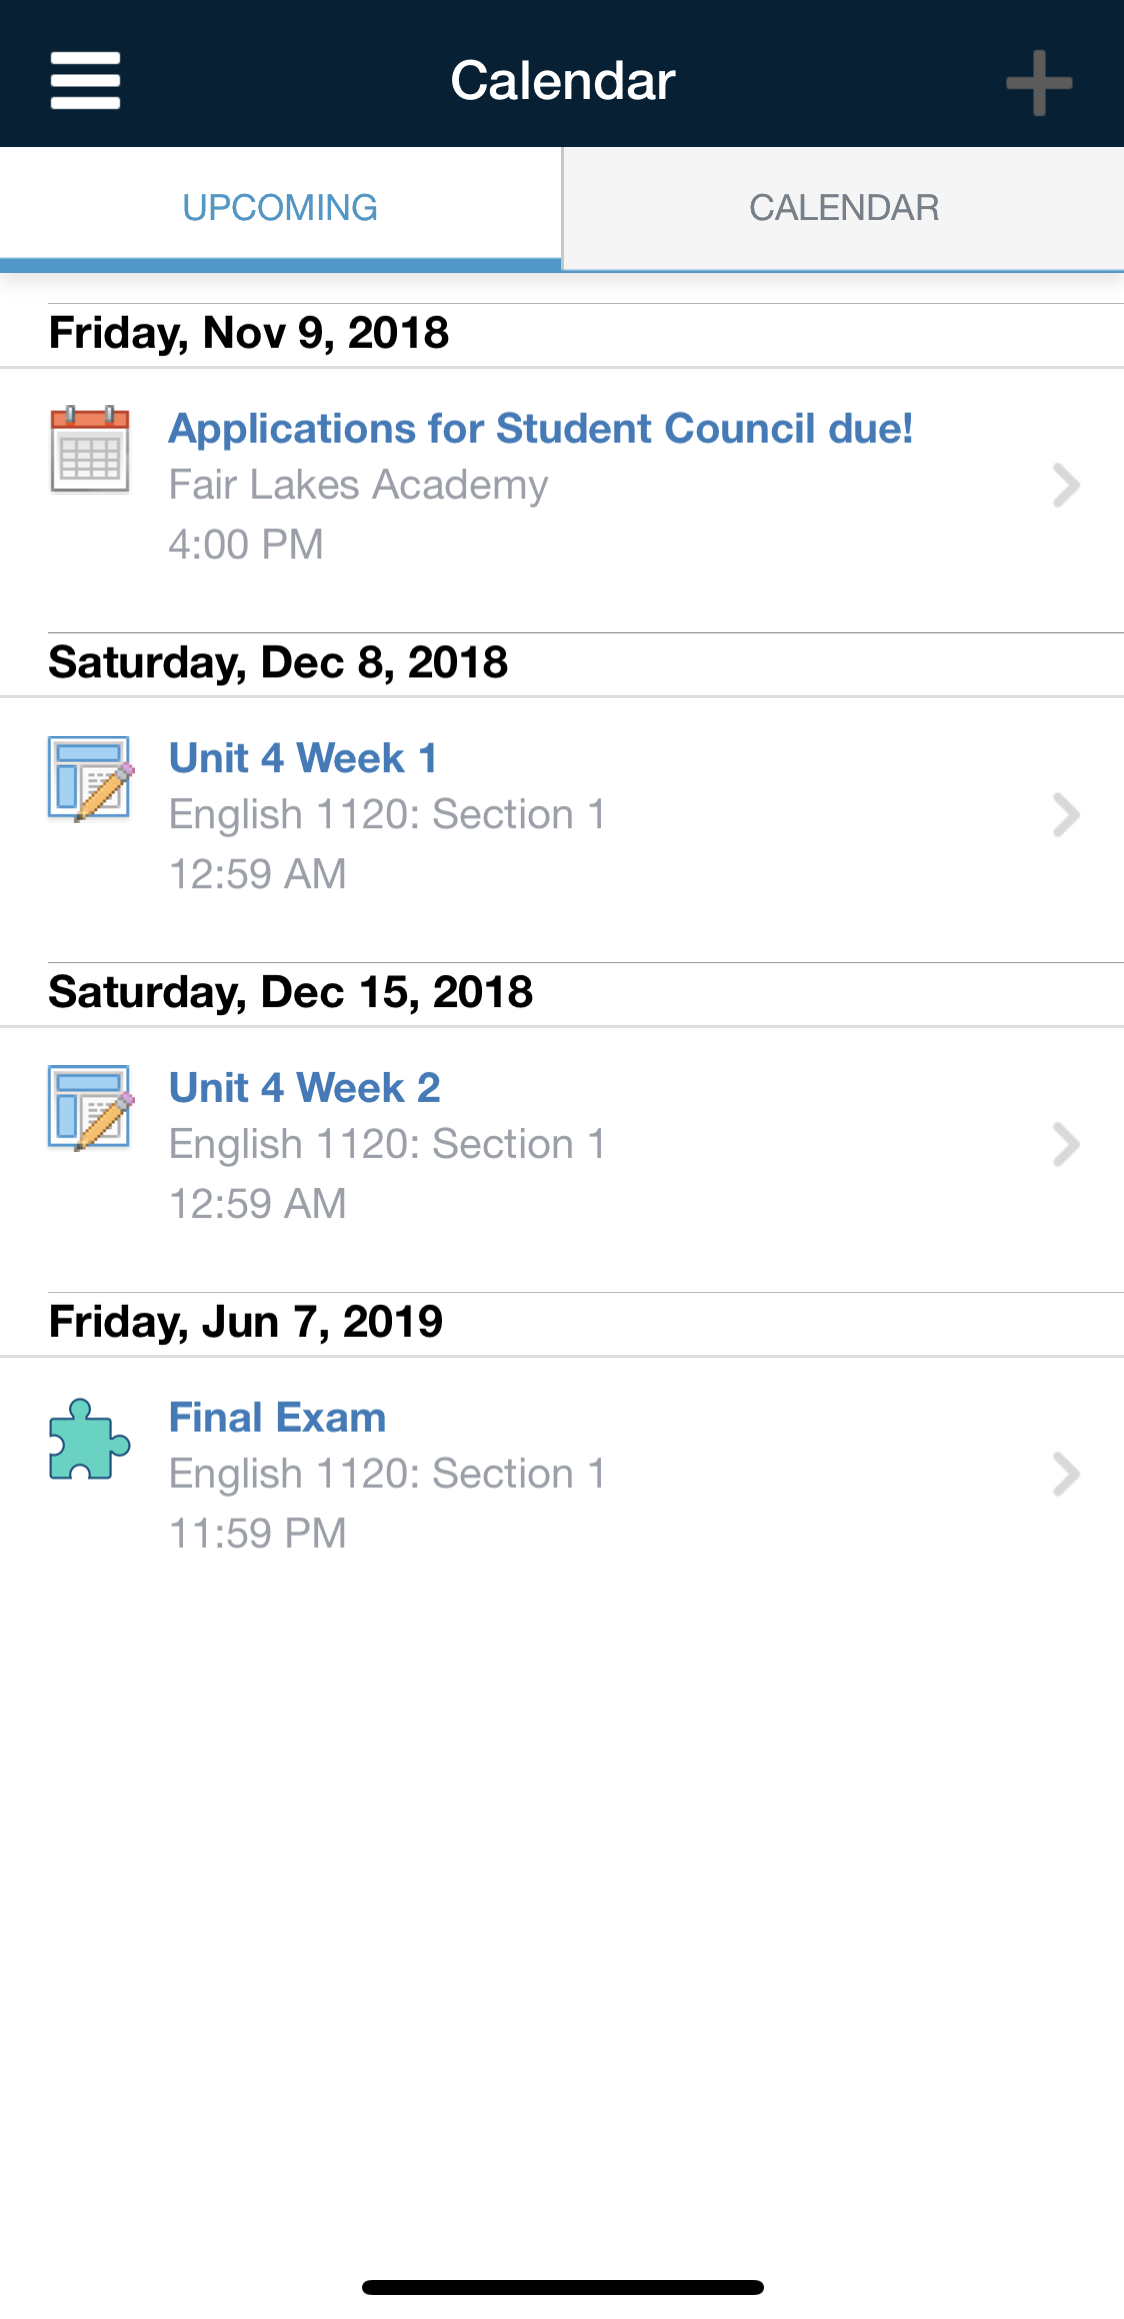 iOS_Upcoming_view_in_Calendar.png